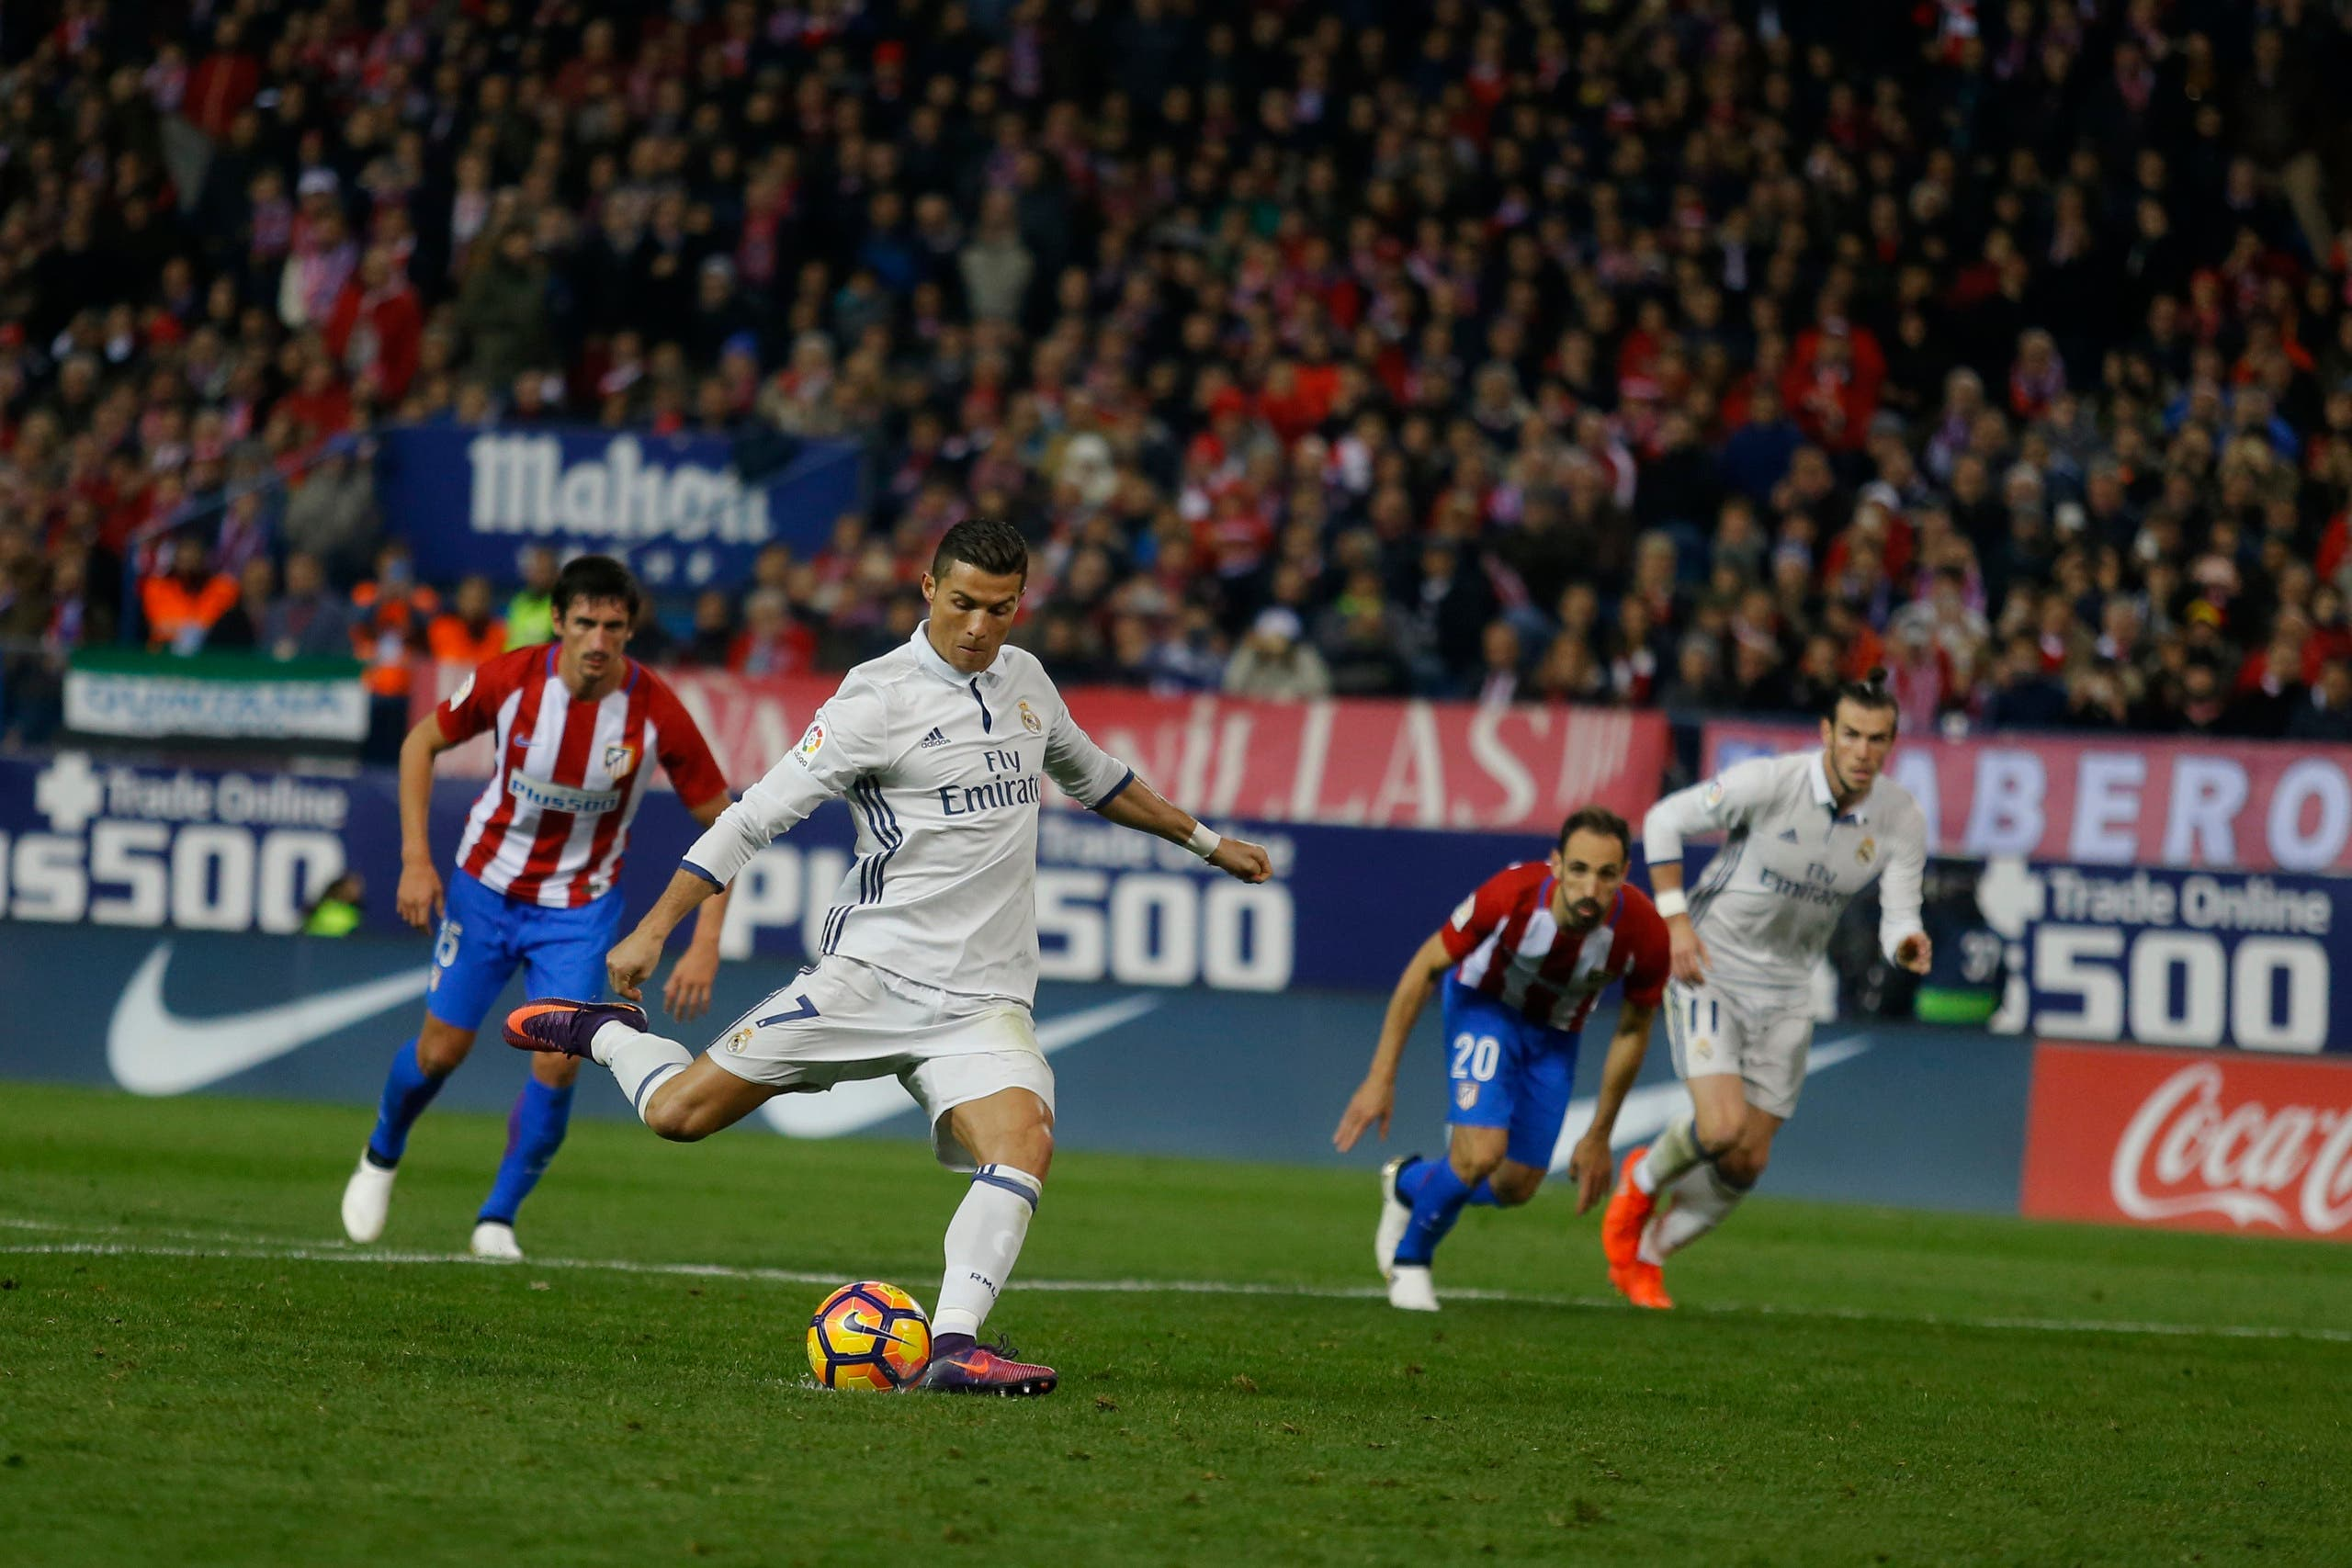 Real Madrid's Cristiano Ronaldo shoots a penalty kick to score his side's second goal against Atletico Madrid during a Spanish La Liga soccer match between Real Madrid and Atletico Madrid at the Vicente Calderon stadium in Madrid, Saturday, Nov. 19, 2016. Ronaldo scored a hat trick in Real Madrid 3-0 victory. (AP)